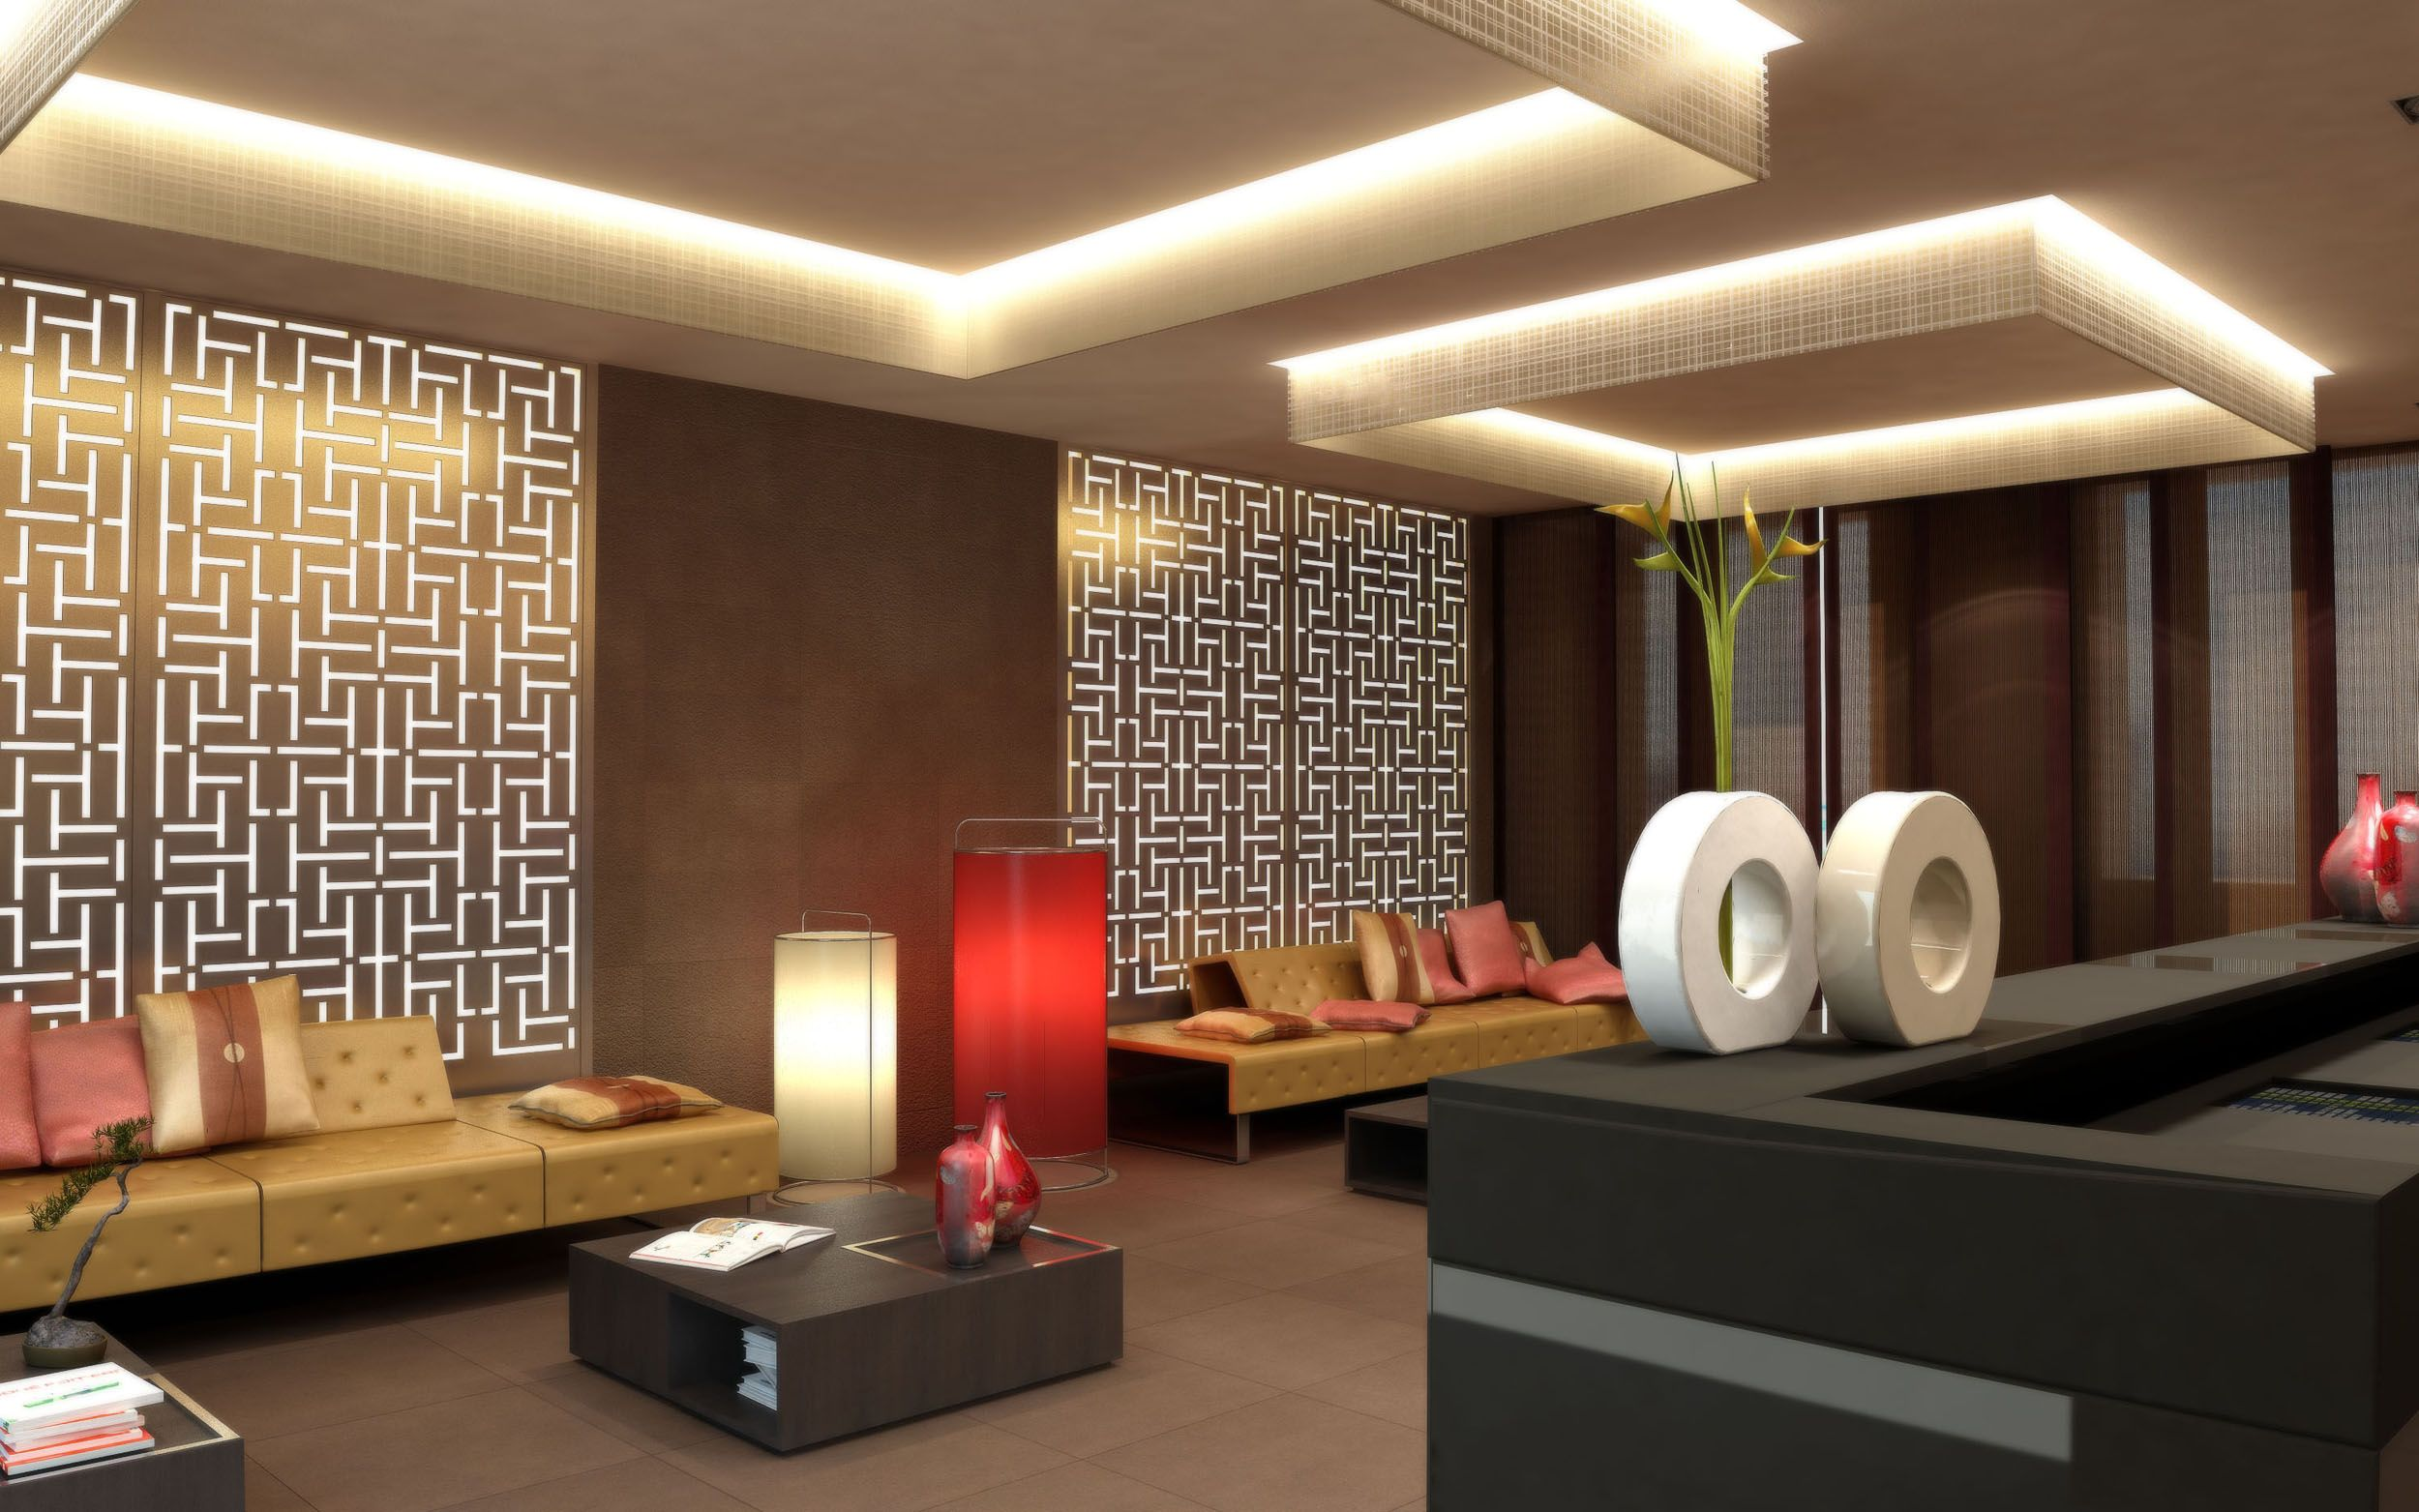 Chinese interior design images chinese interior design for Home interior design images